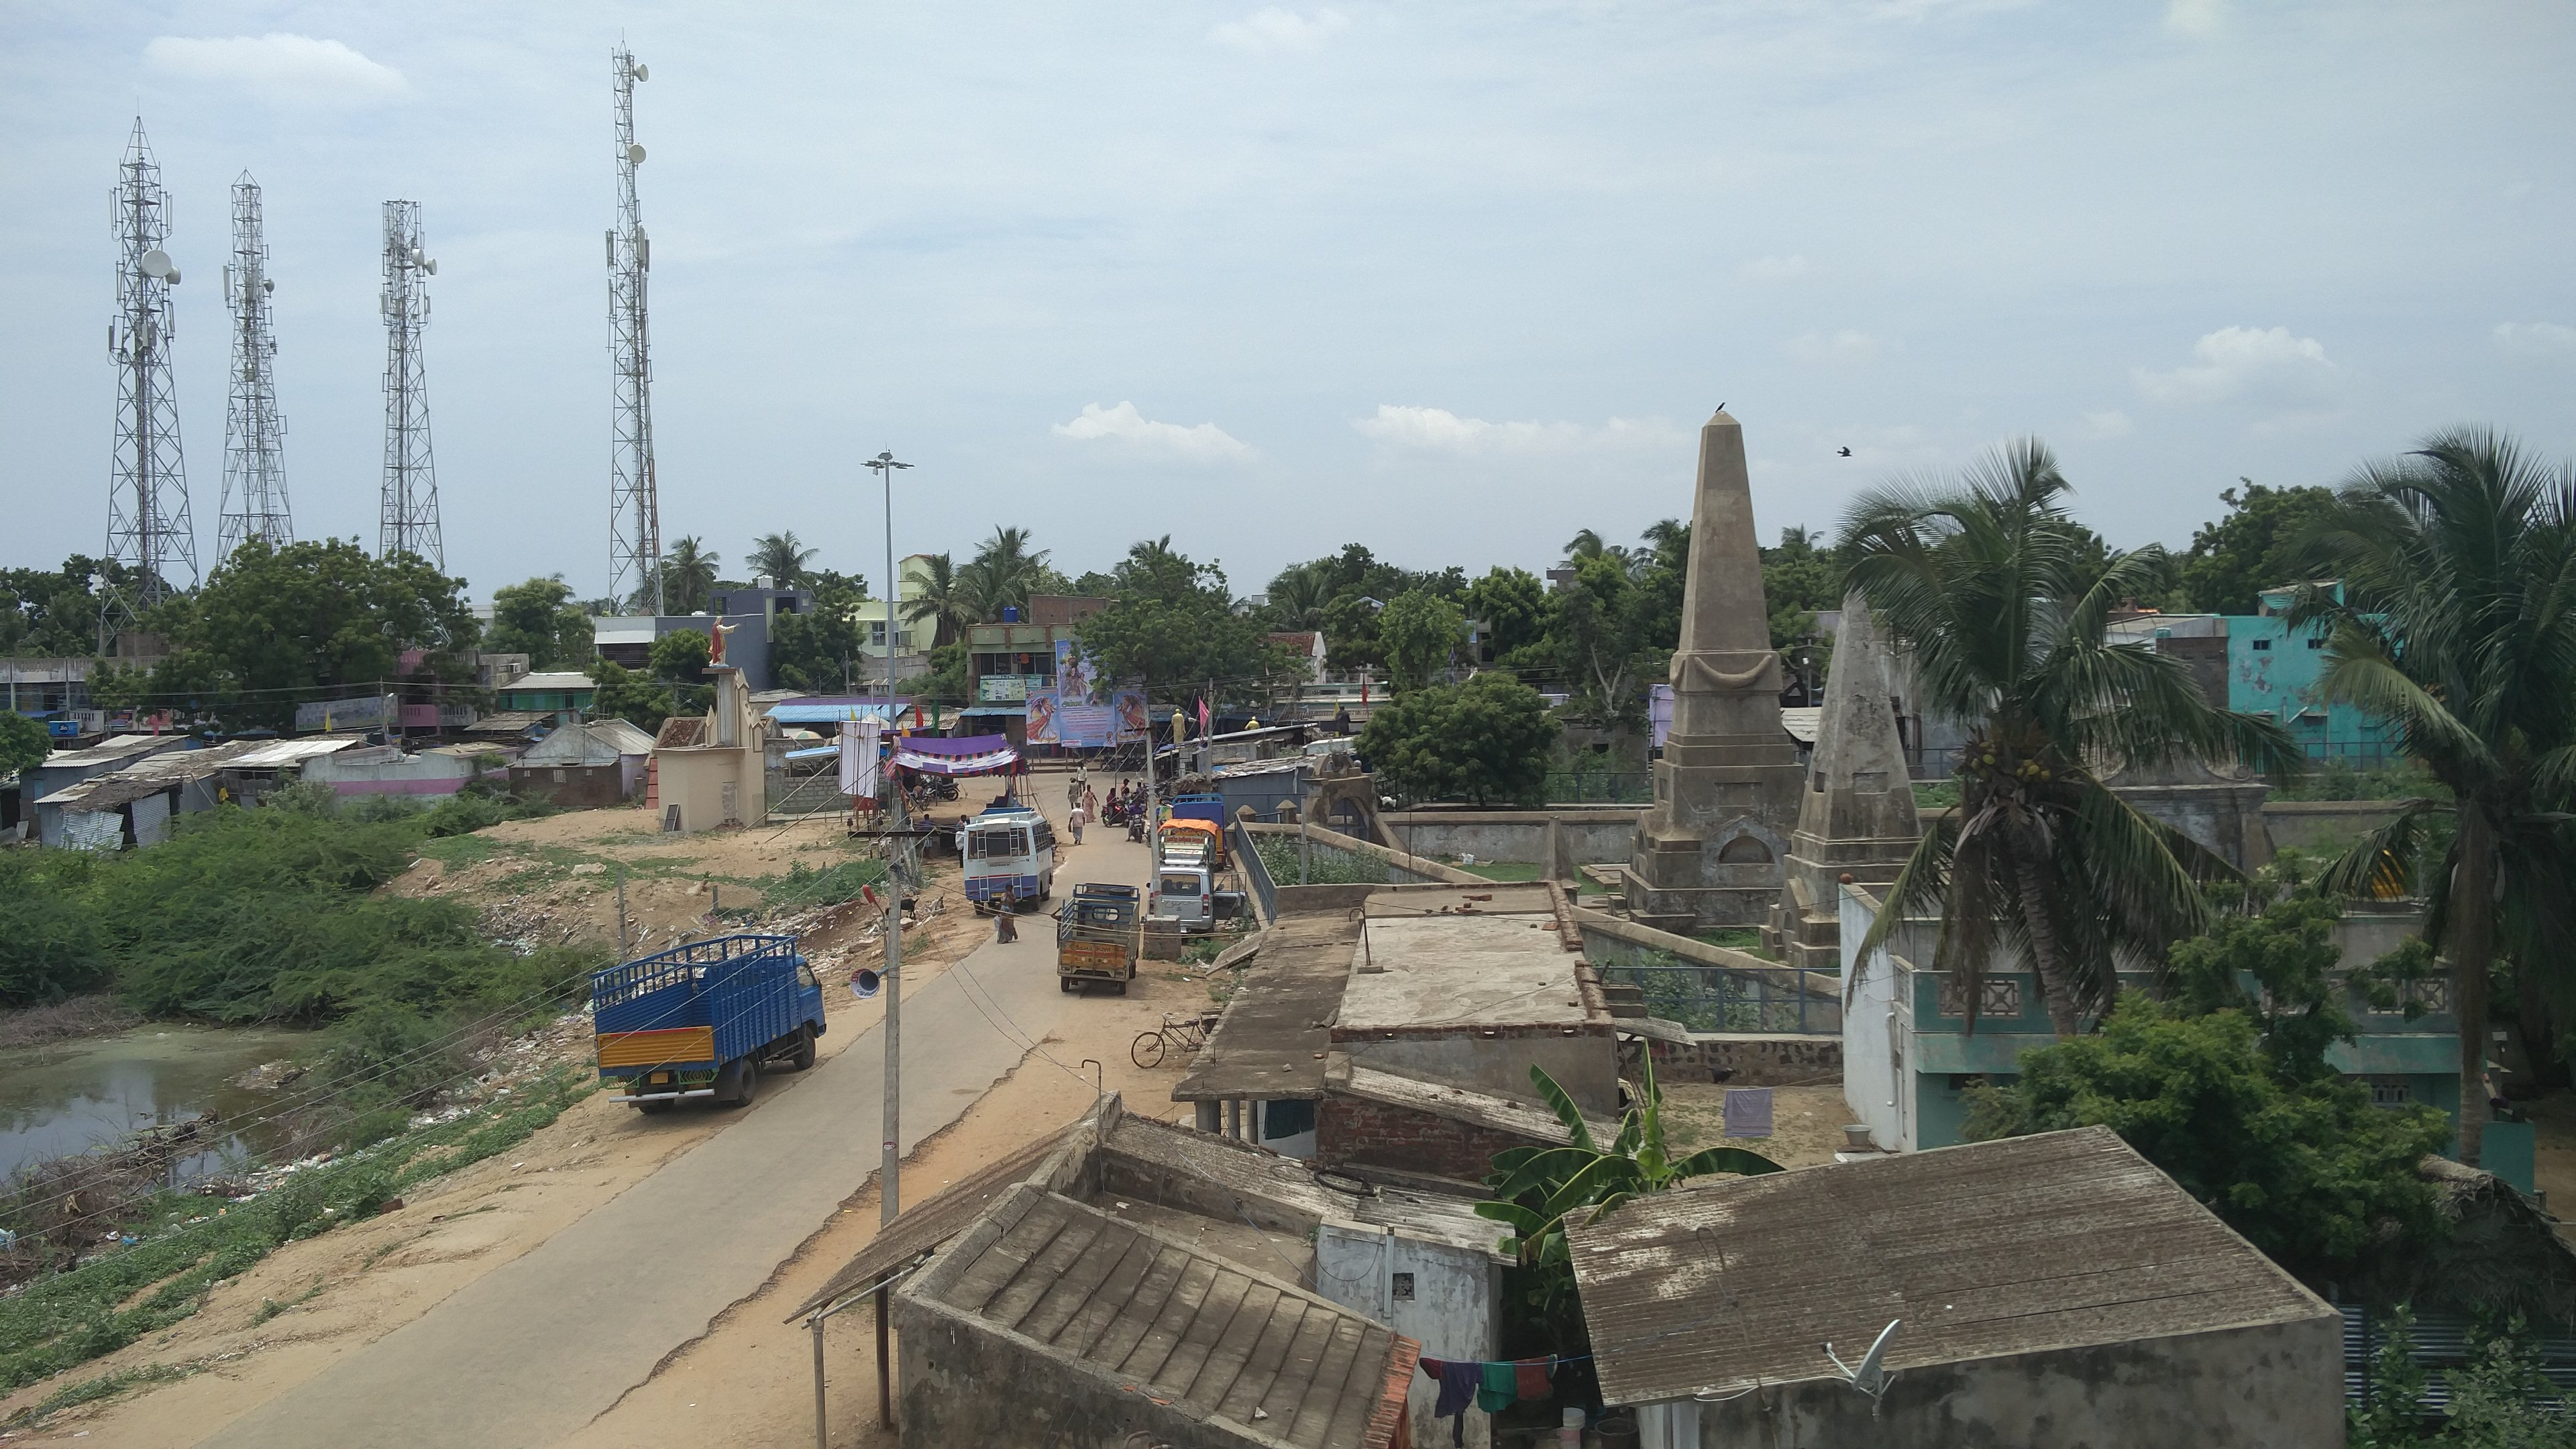 The town of Pulicat. Photo credit: Vinita Govindarajan